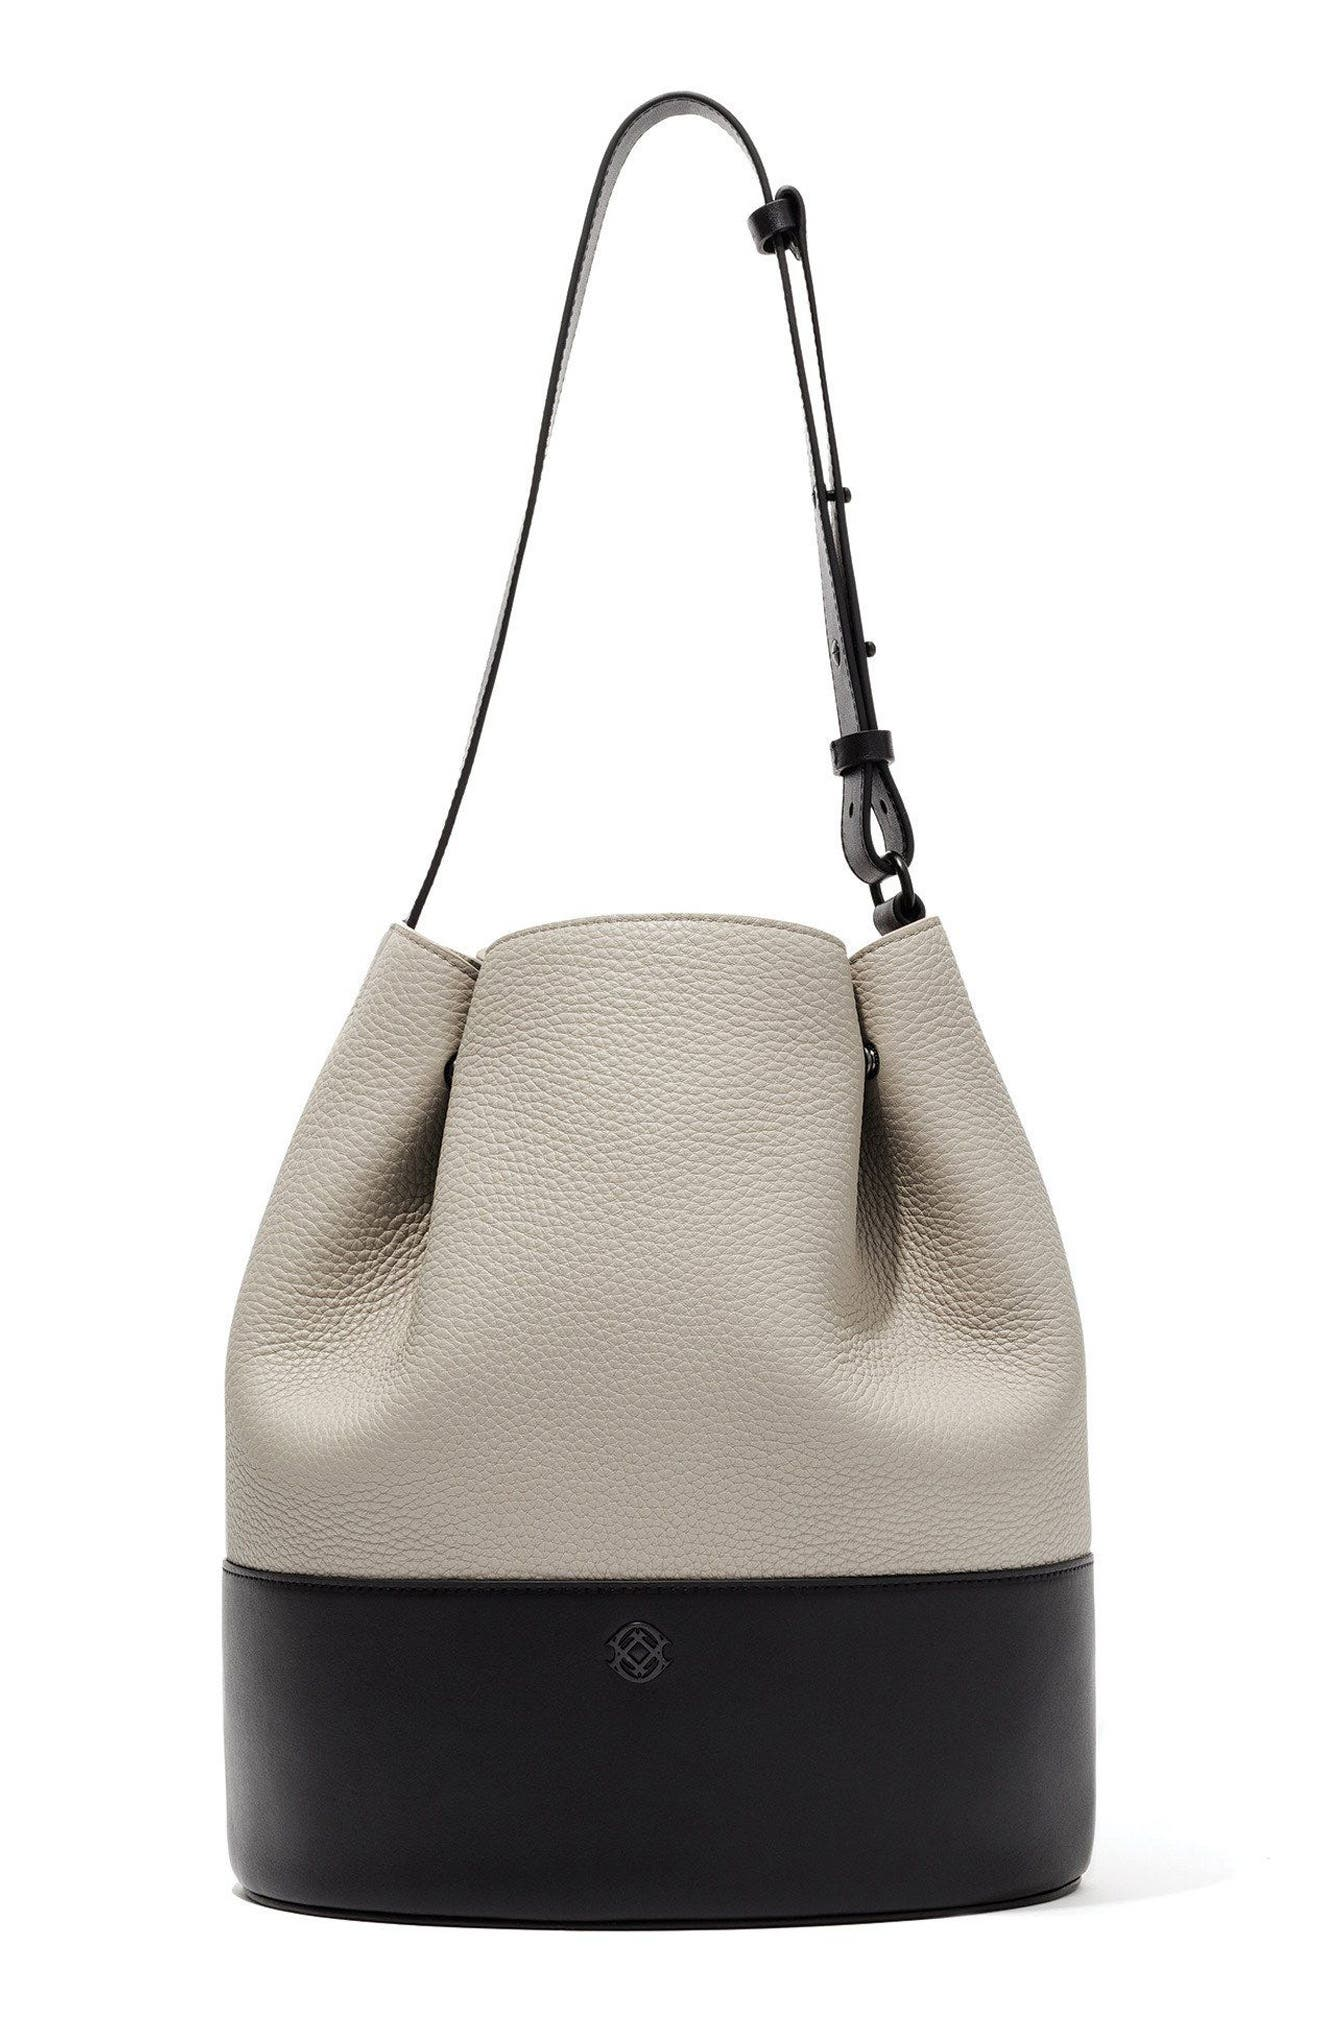 Dagne Dover Ava Leather Bucket Bag